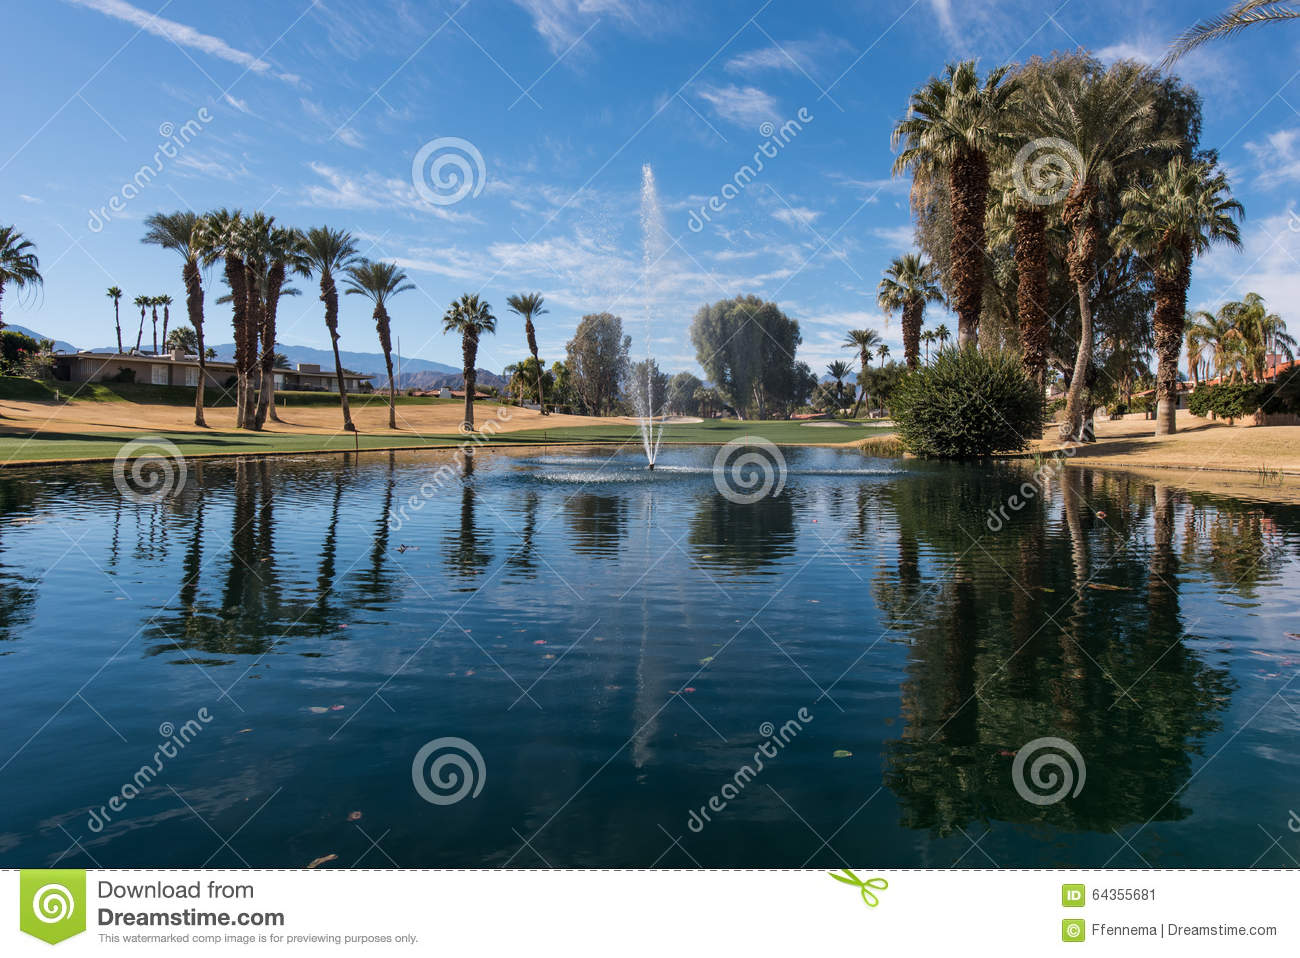 Golf water hazard with a fountain and trees